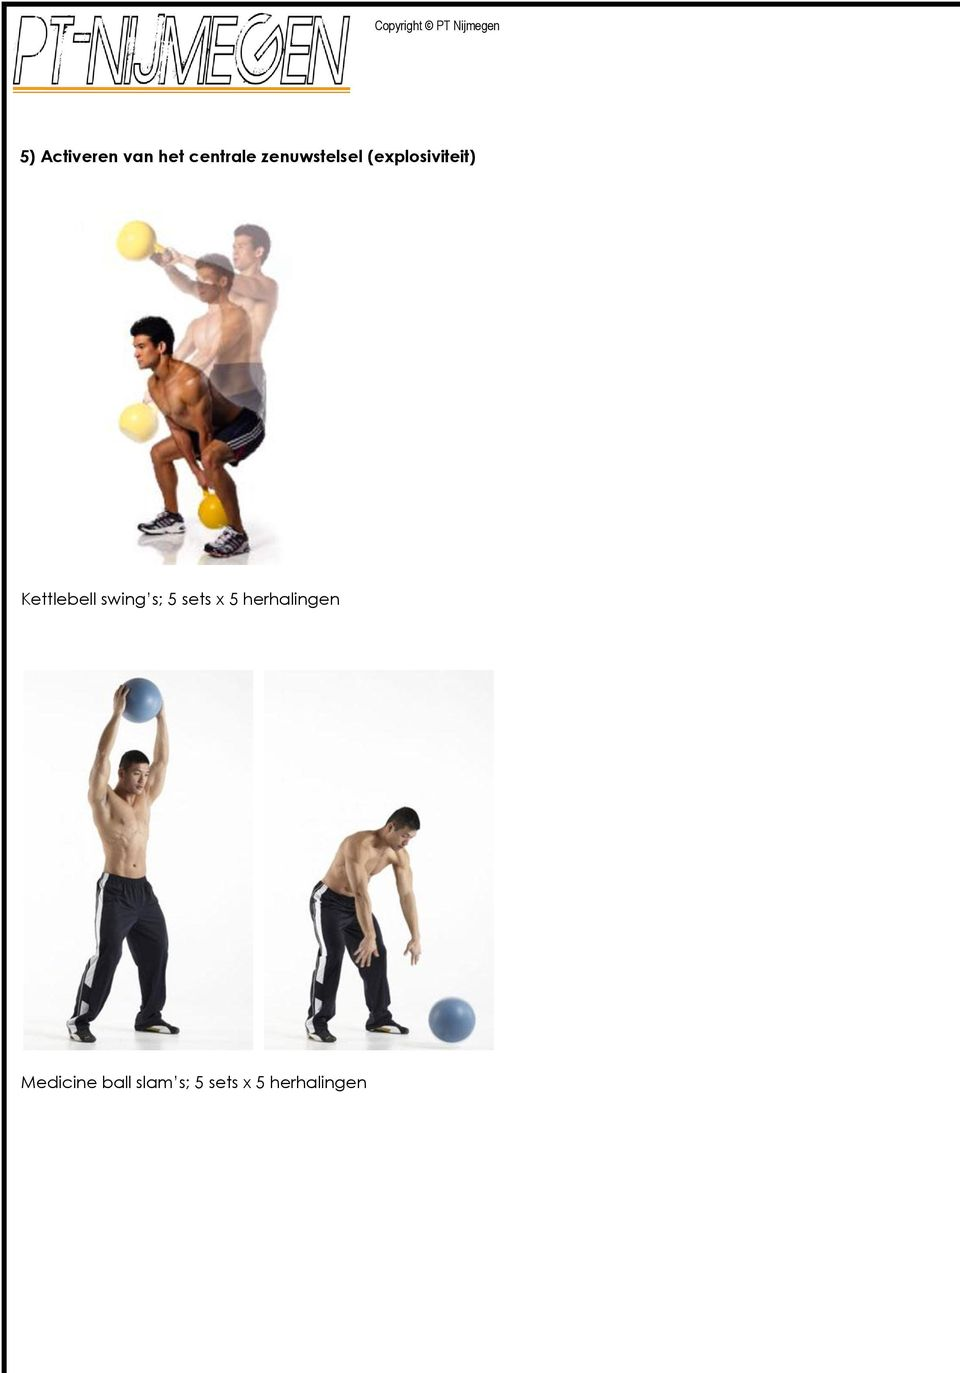 Kettlebell swing s; 5 sets x 5